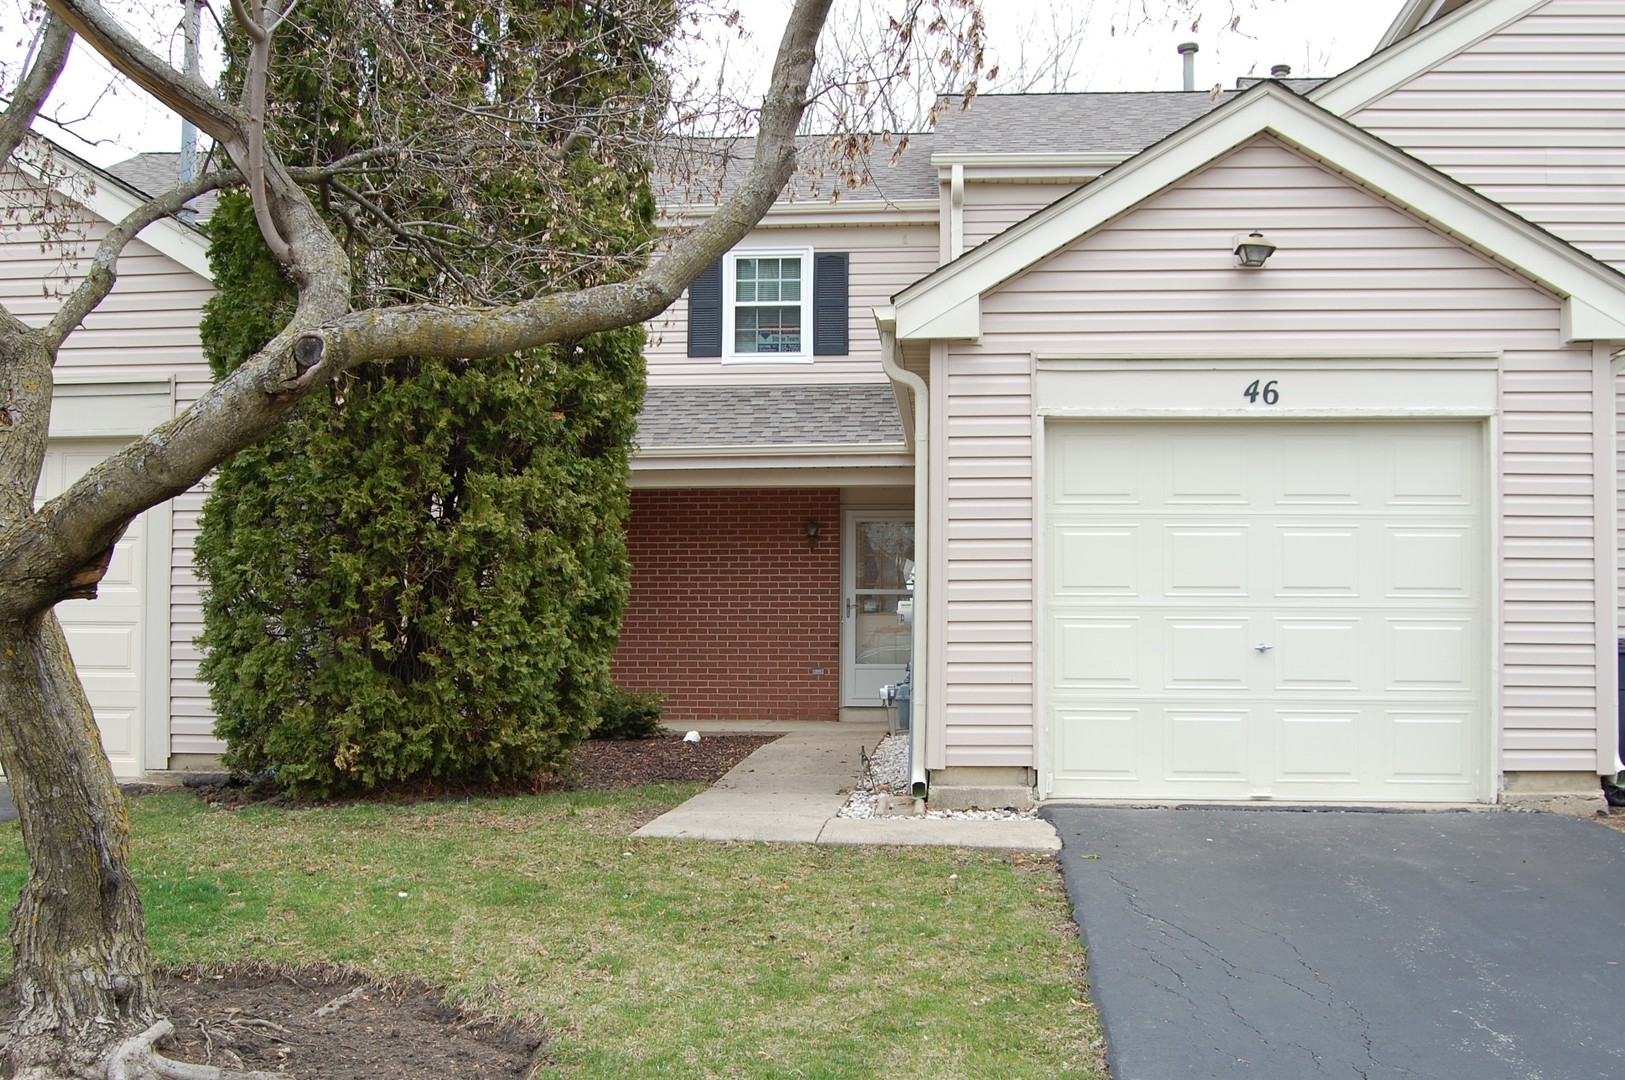 46 King Drive, Streamwood, Illinois